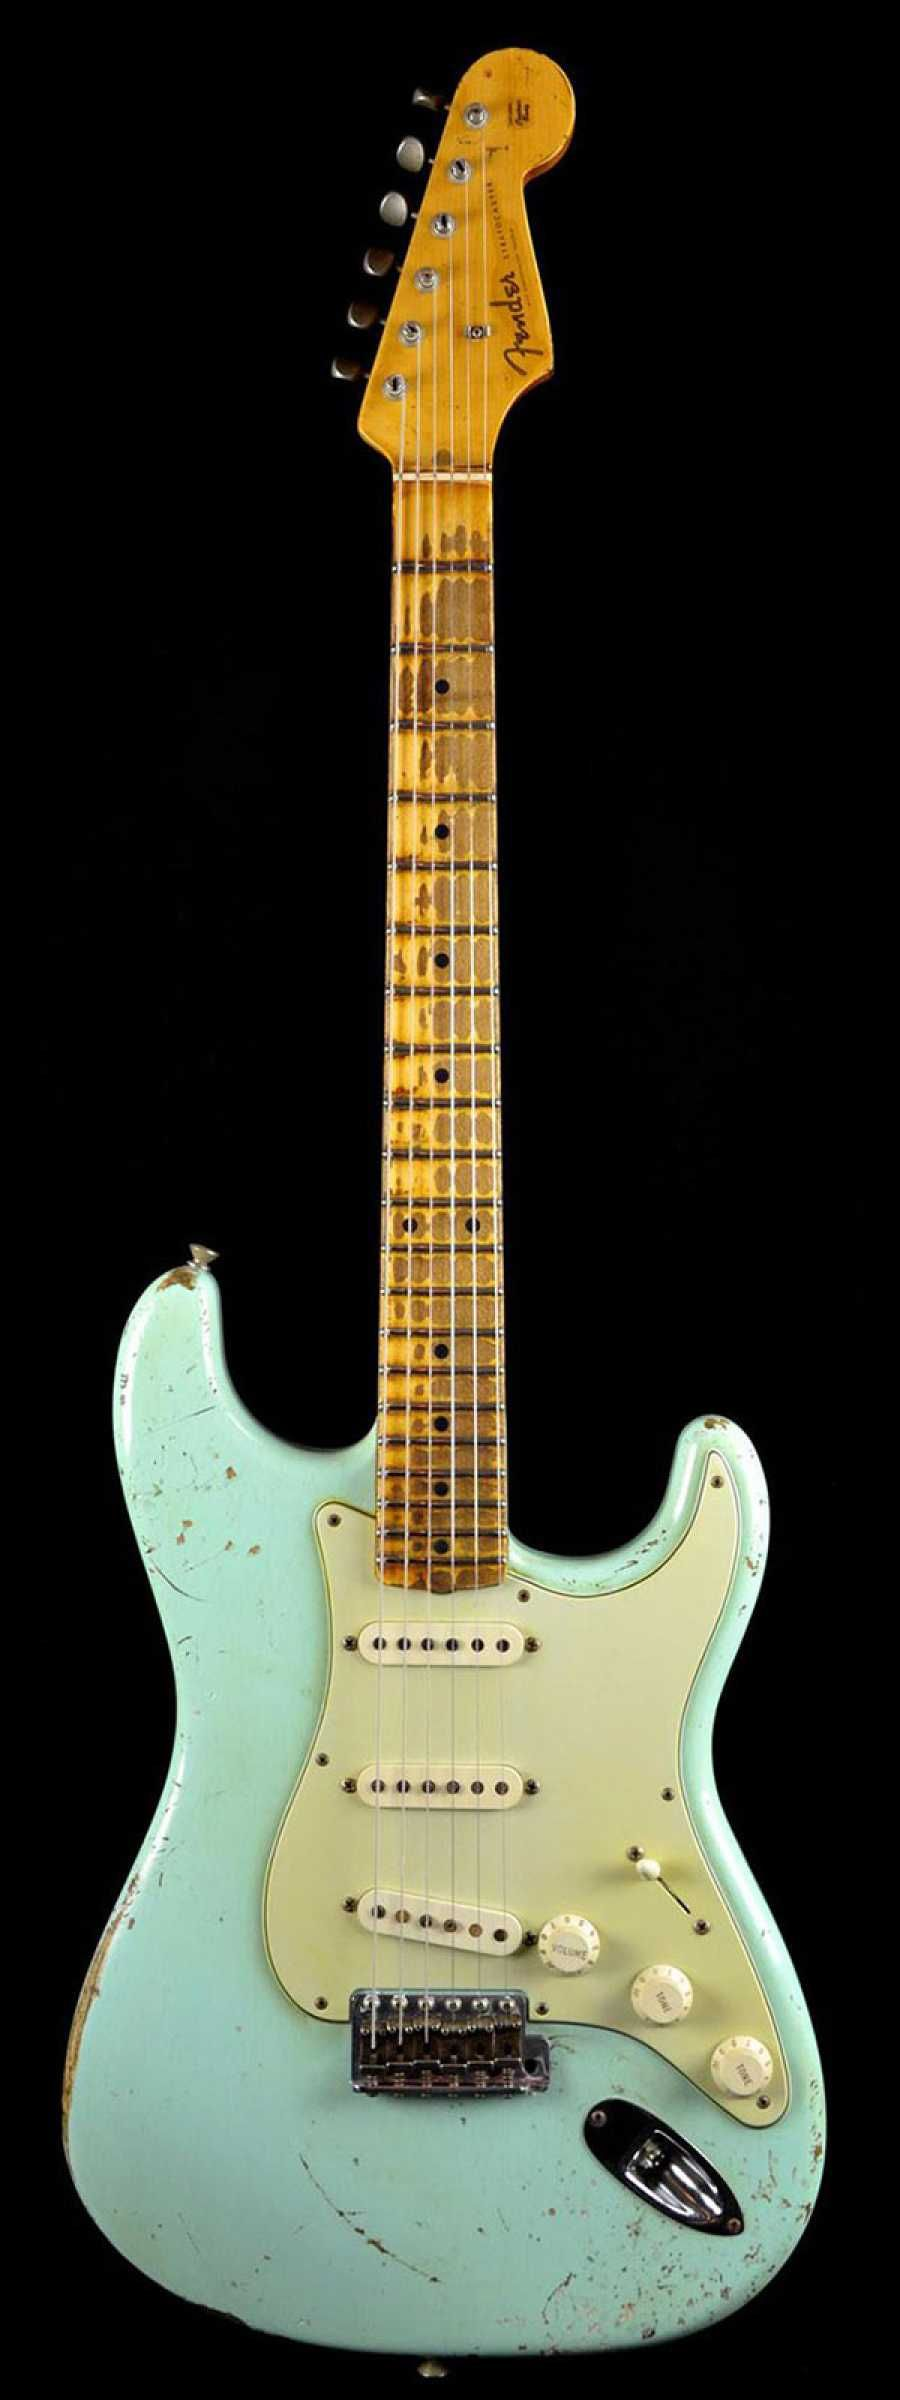 101 best guitar stuff images on pinterest electric guitars